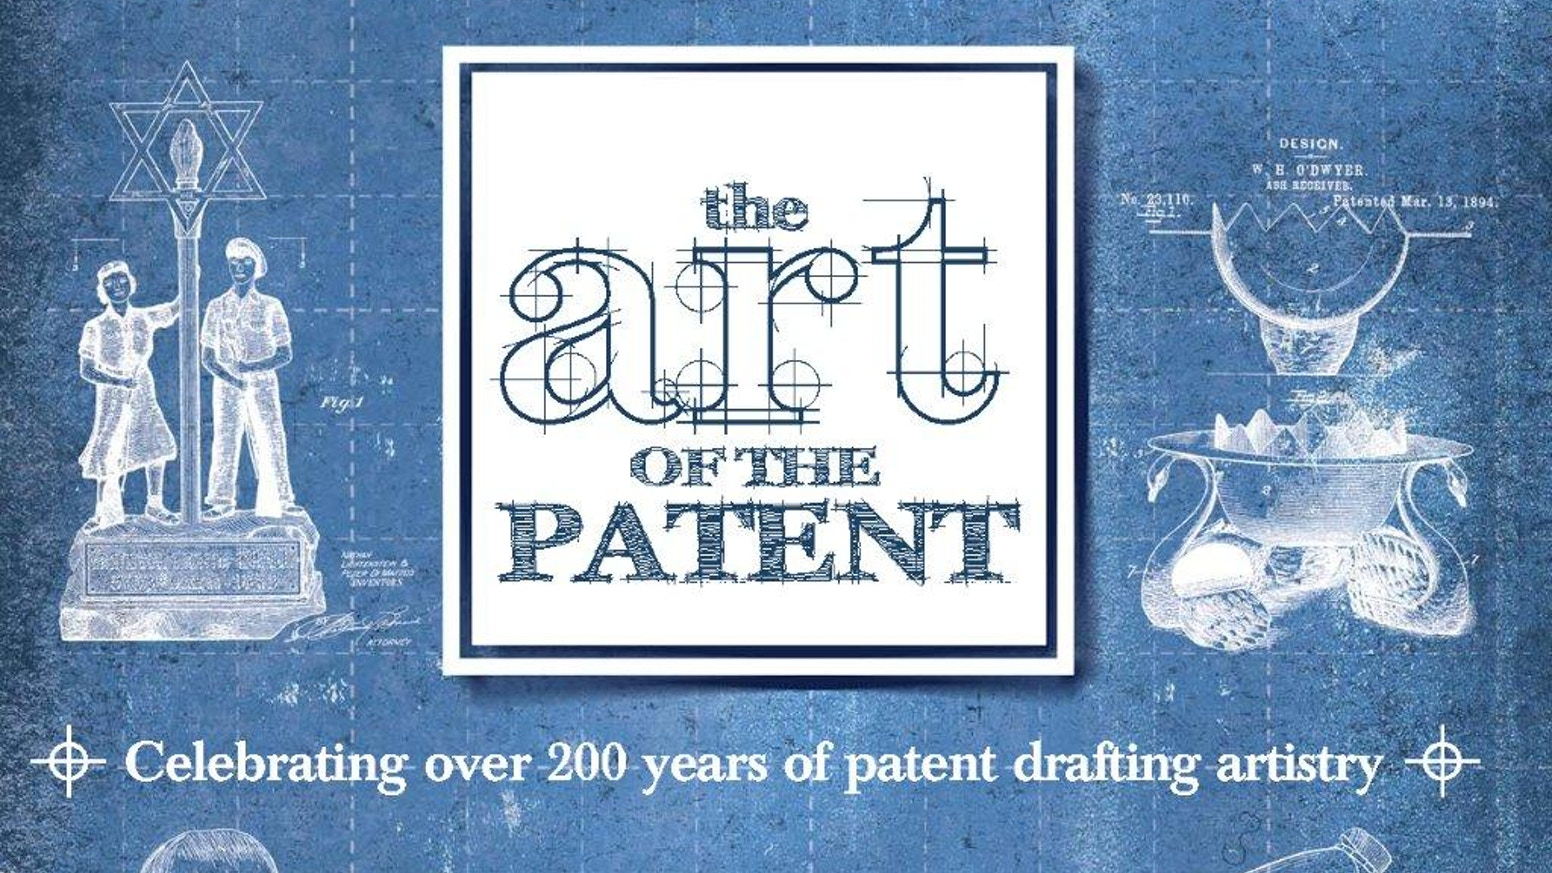 An art book celebrating some of  the best patent drawings of the last 200 years, bringing to light some amazing line-art illustrations.